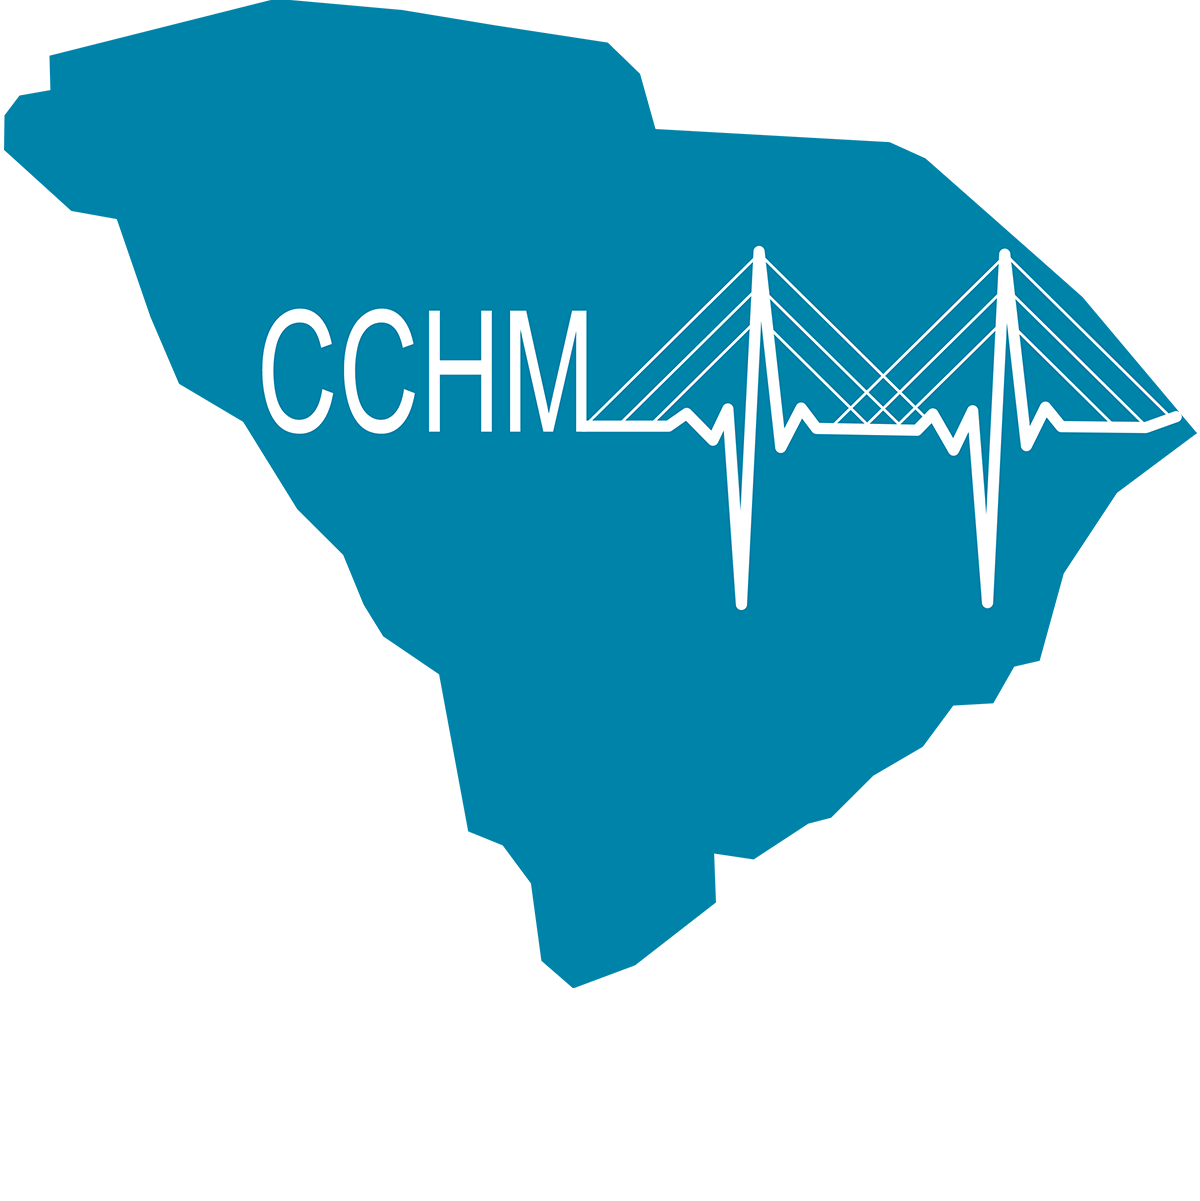 CCHM Logo_1200x1200_Top Aligned